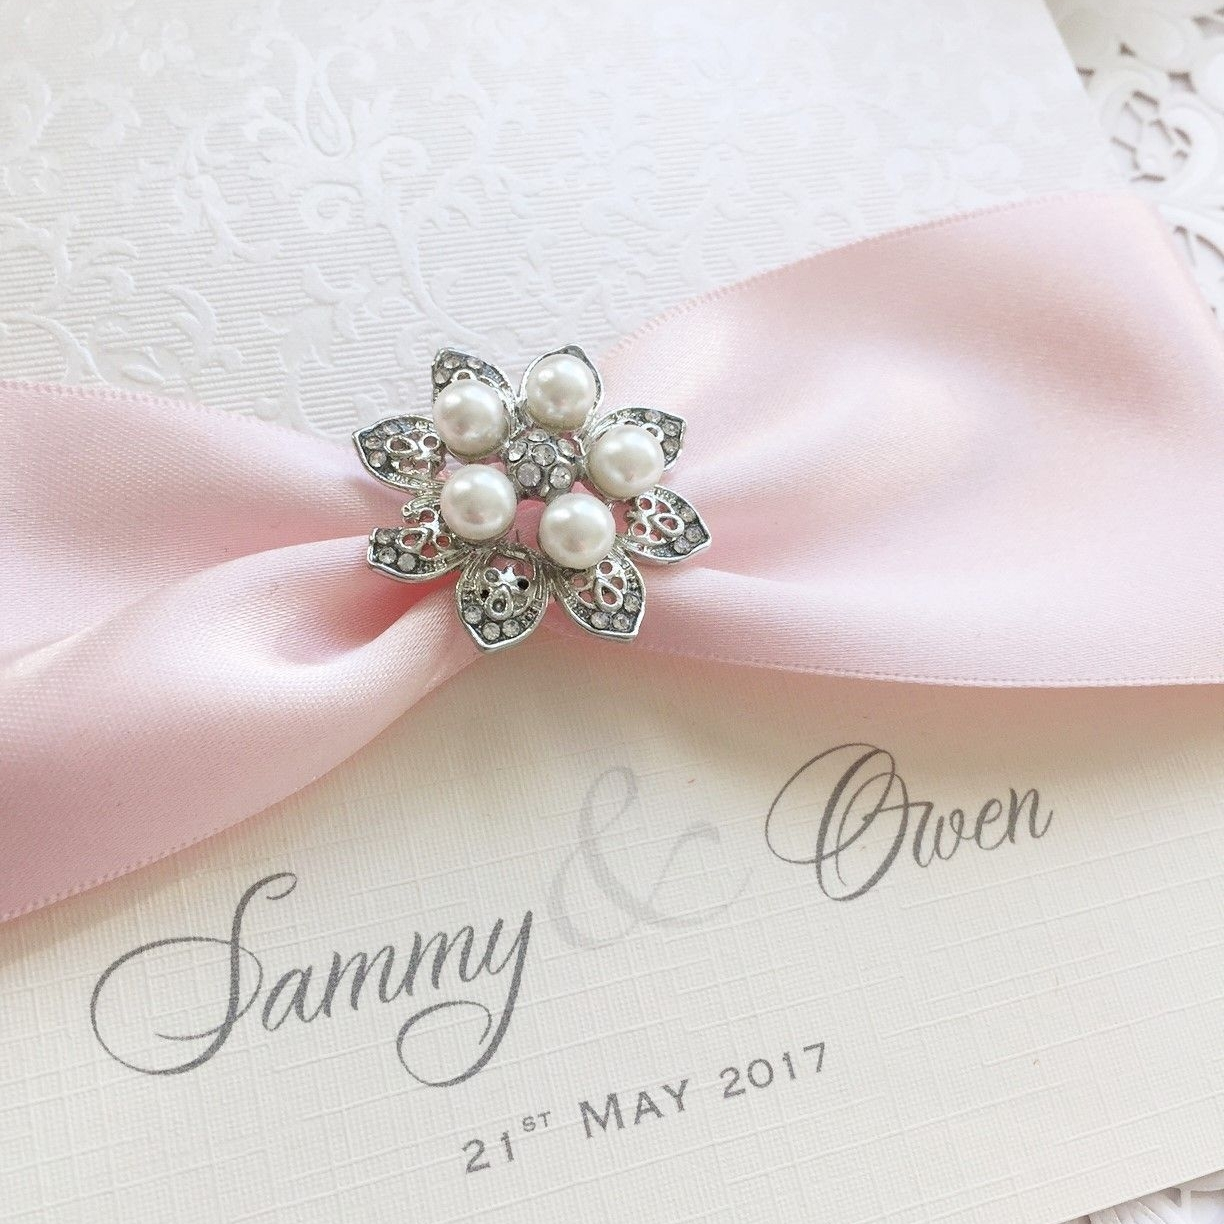 Vintage themed wedding invitation with pearl brooch